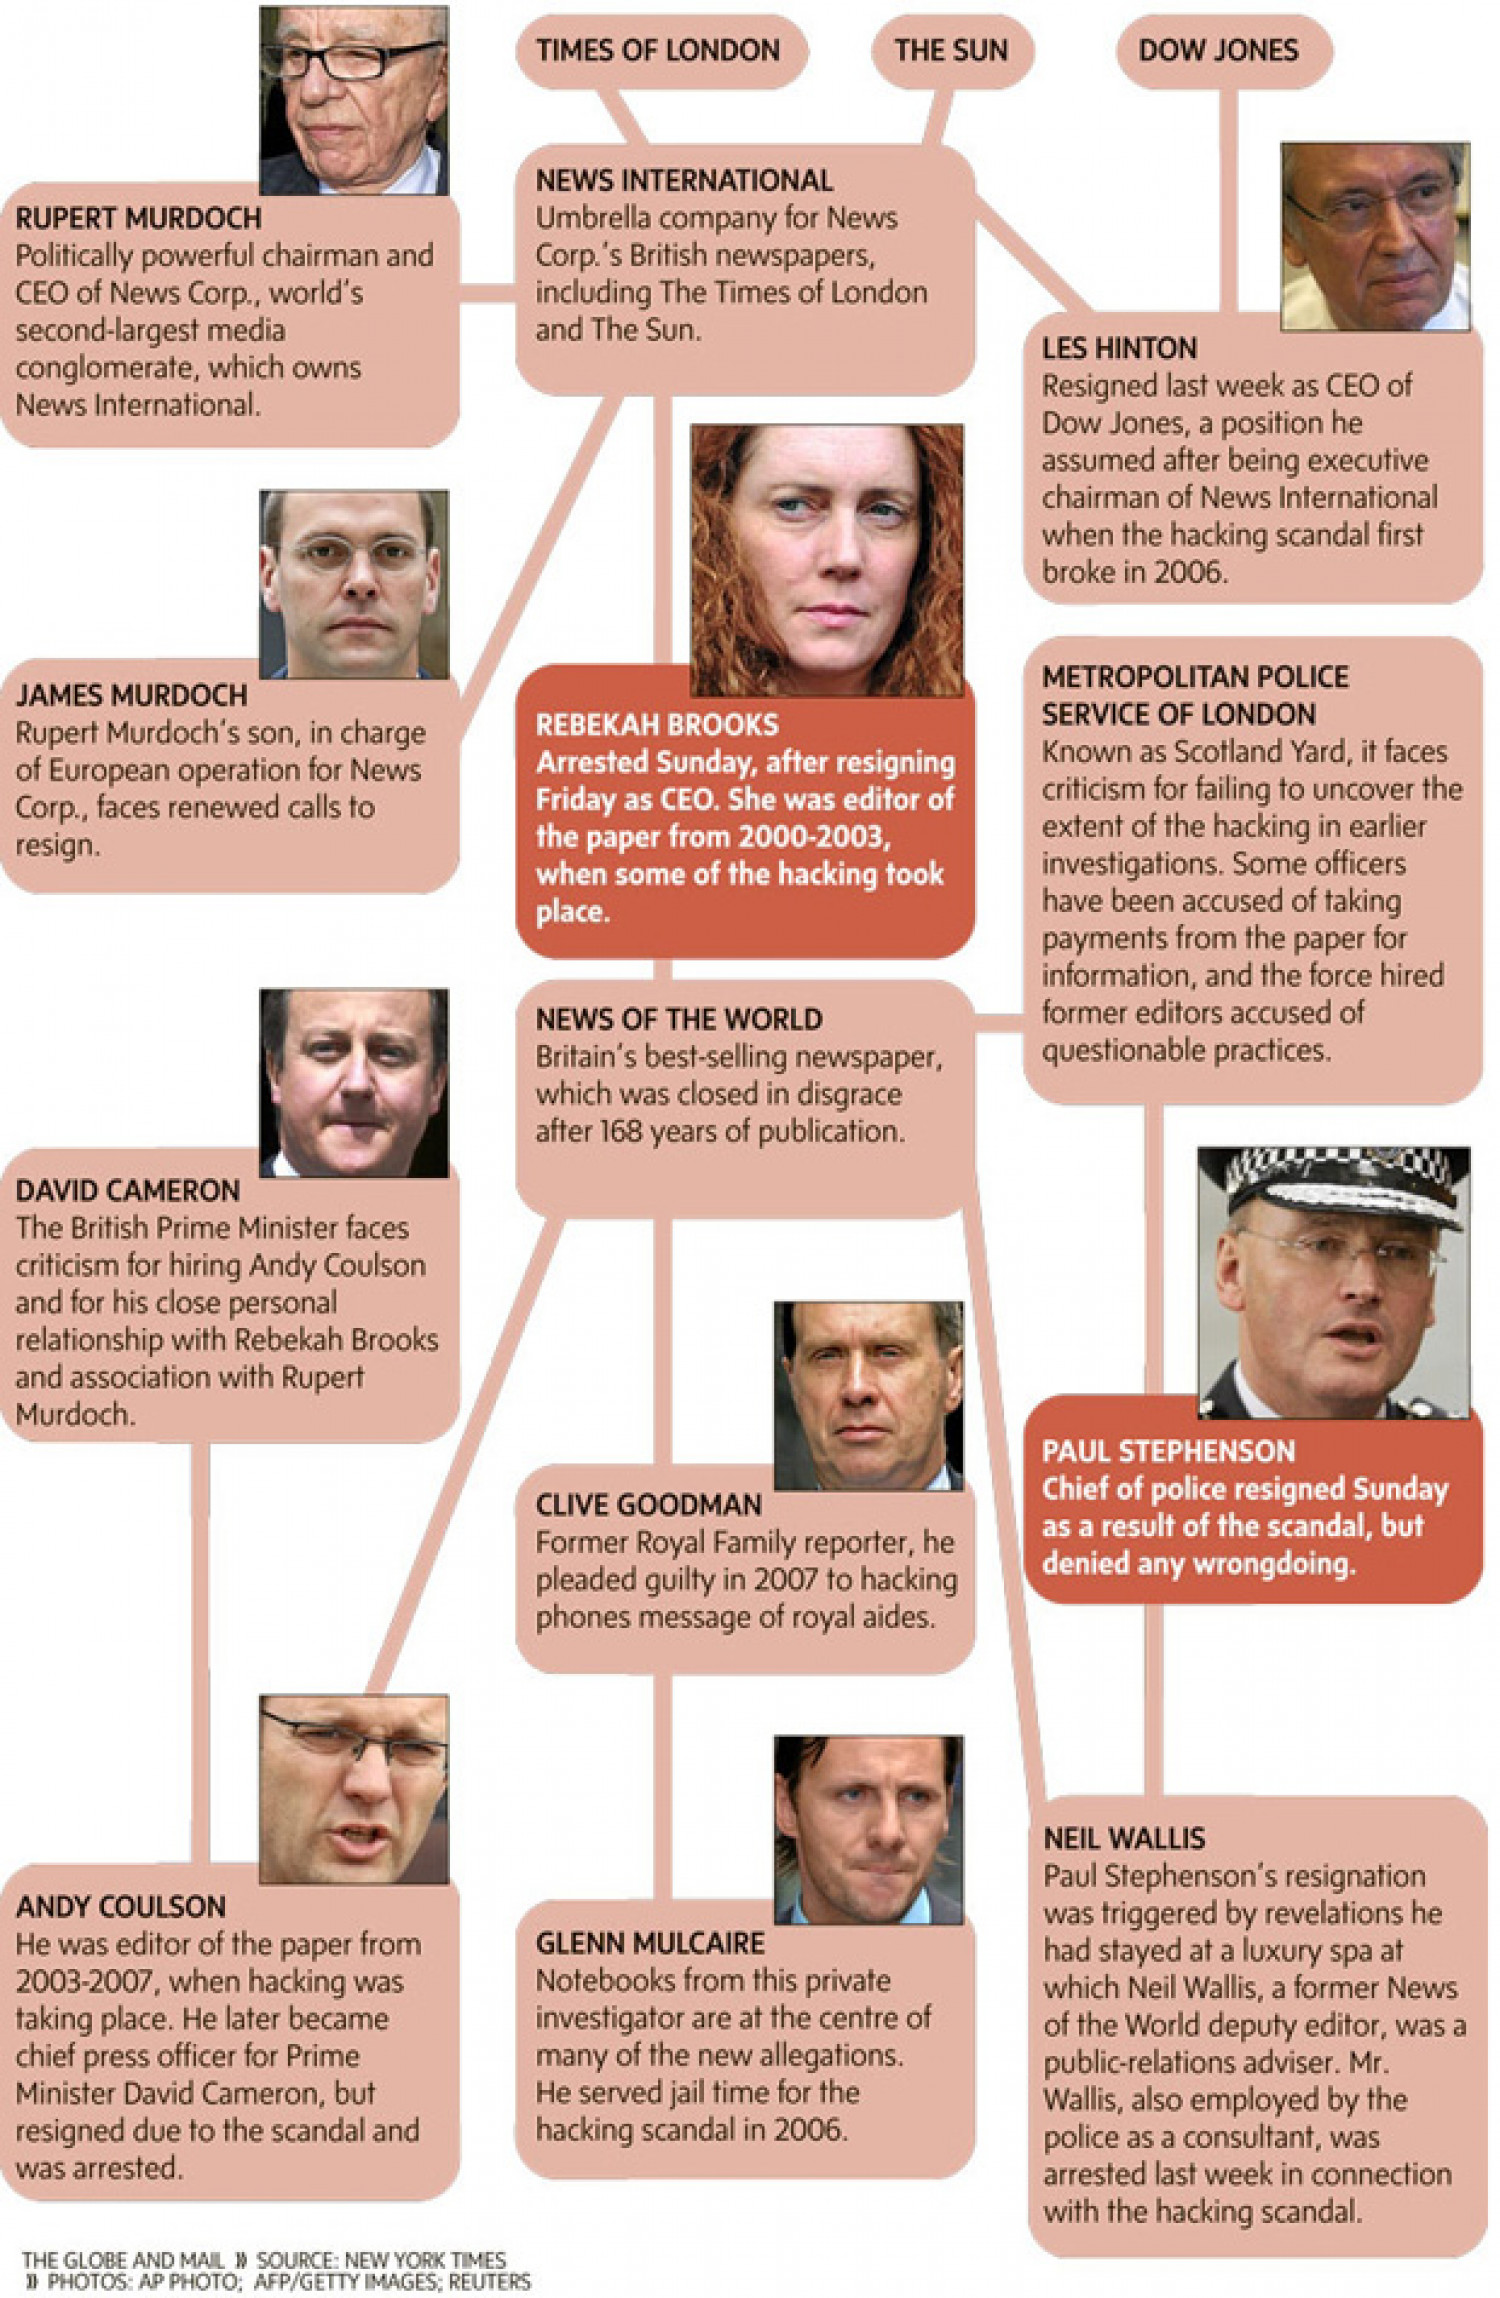 Tangled web of phone-hacking, police-bribery scandal - The Globe ... Infographic